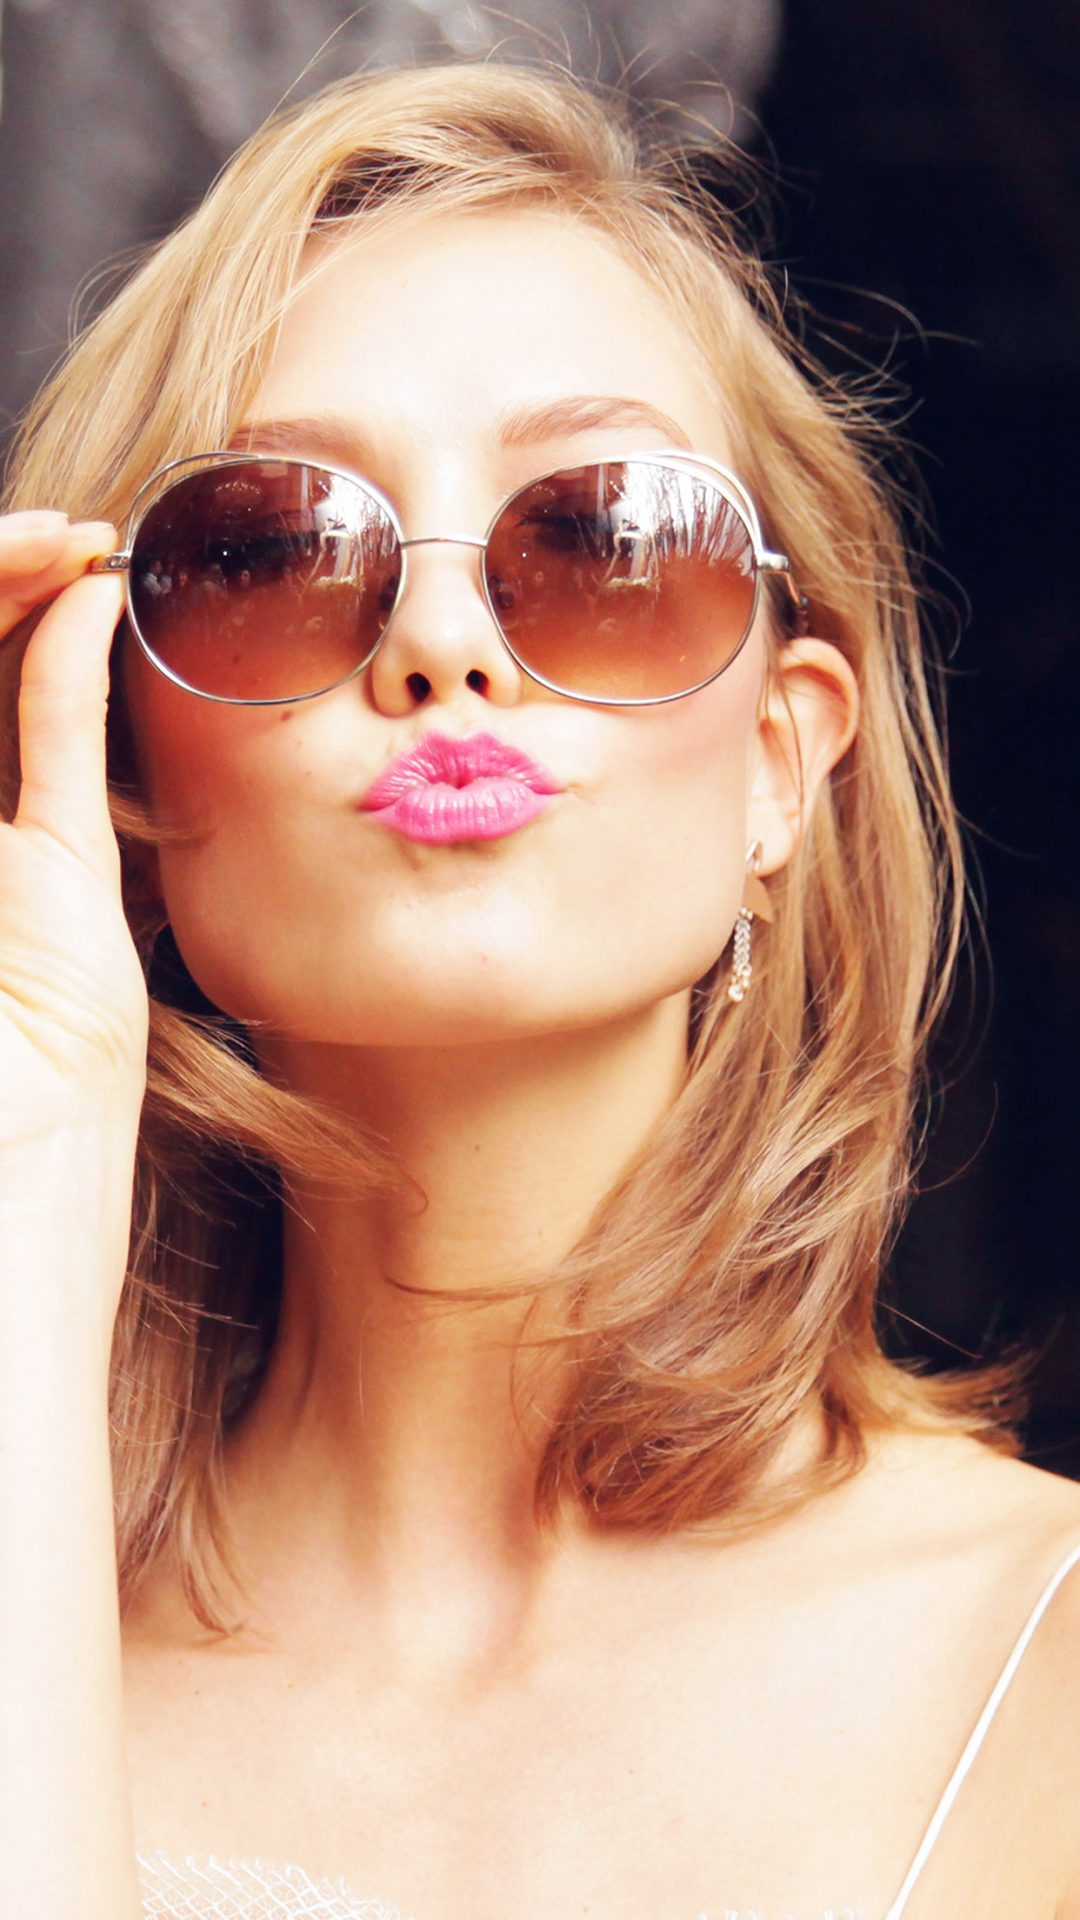 Sunglass Model Karlie Kloss Cute Beauty